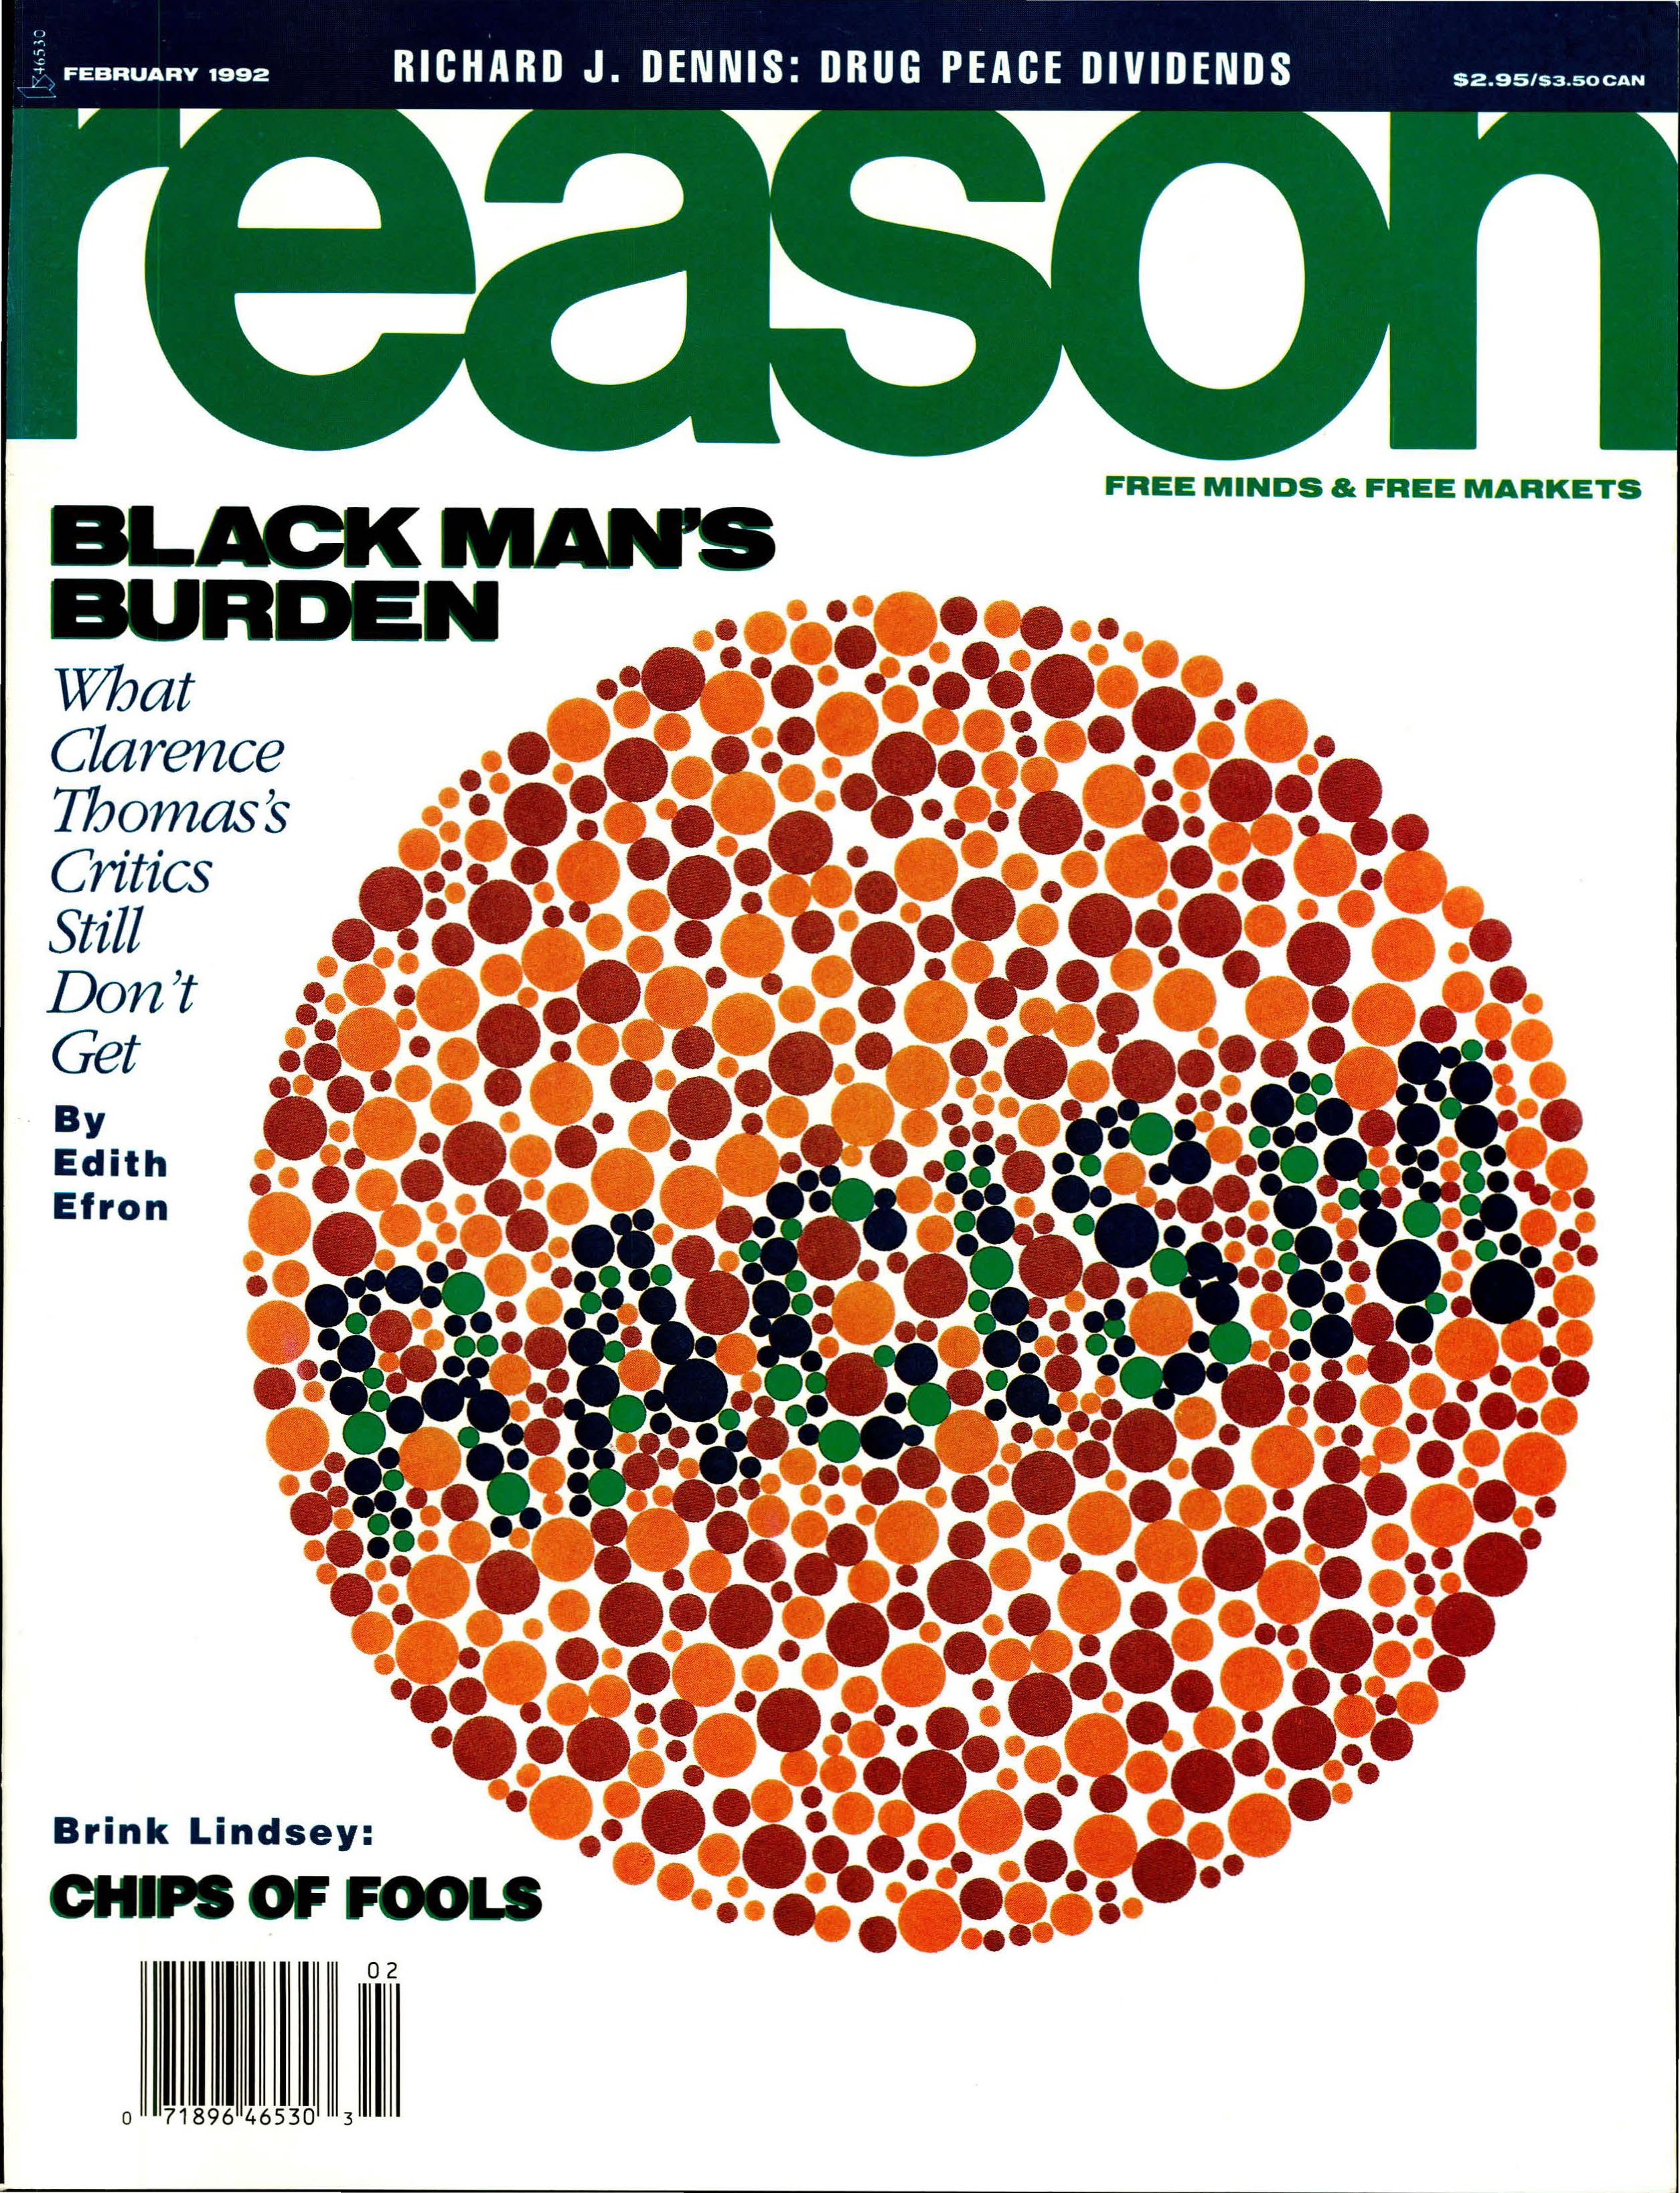 Reason Magazine, February 1992 cover image